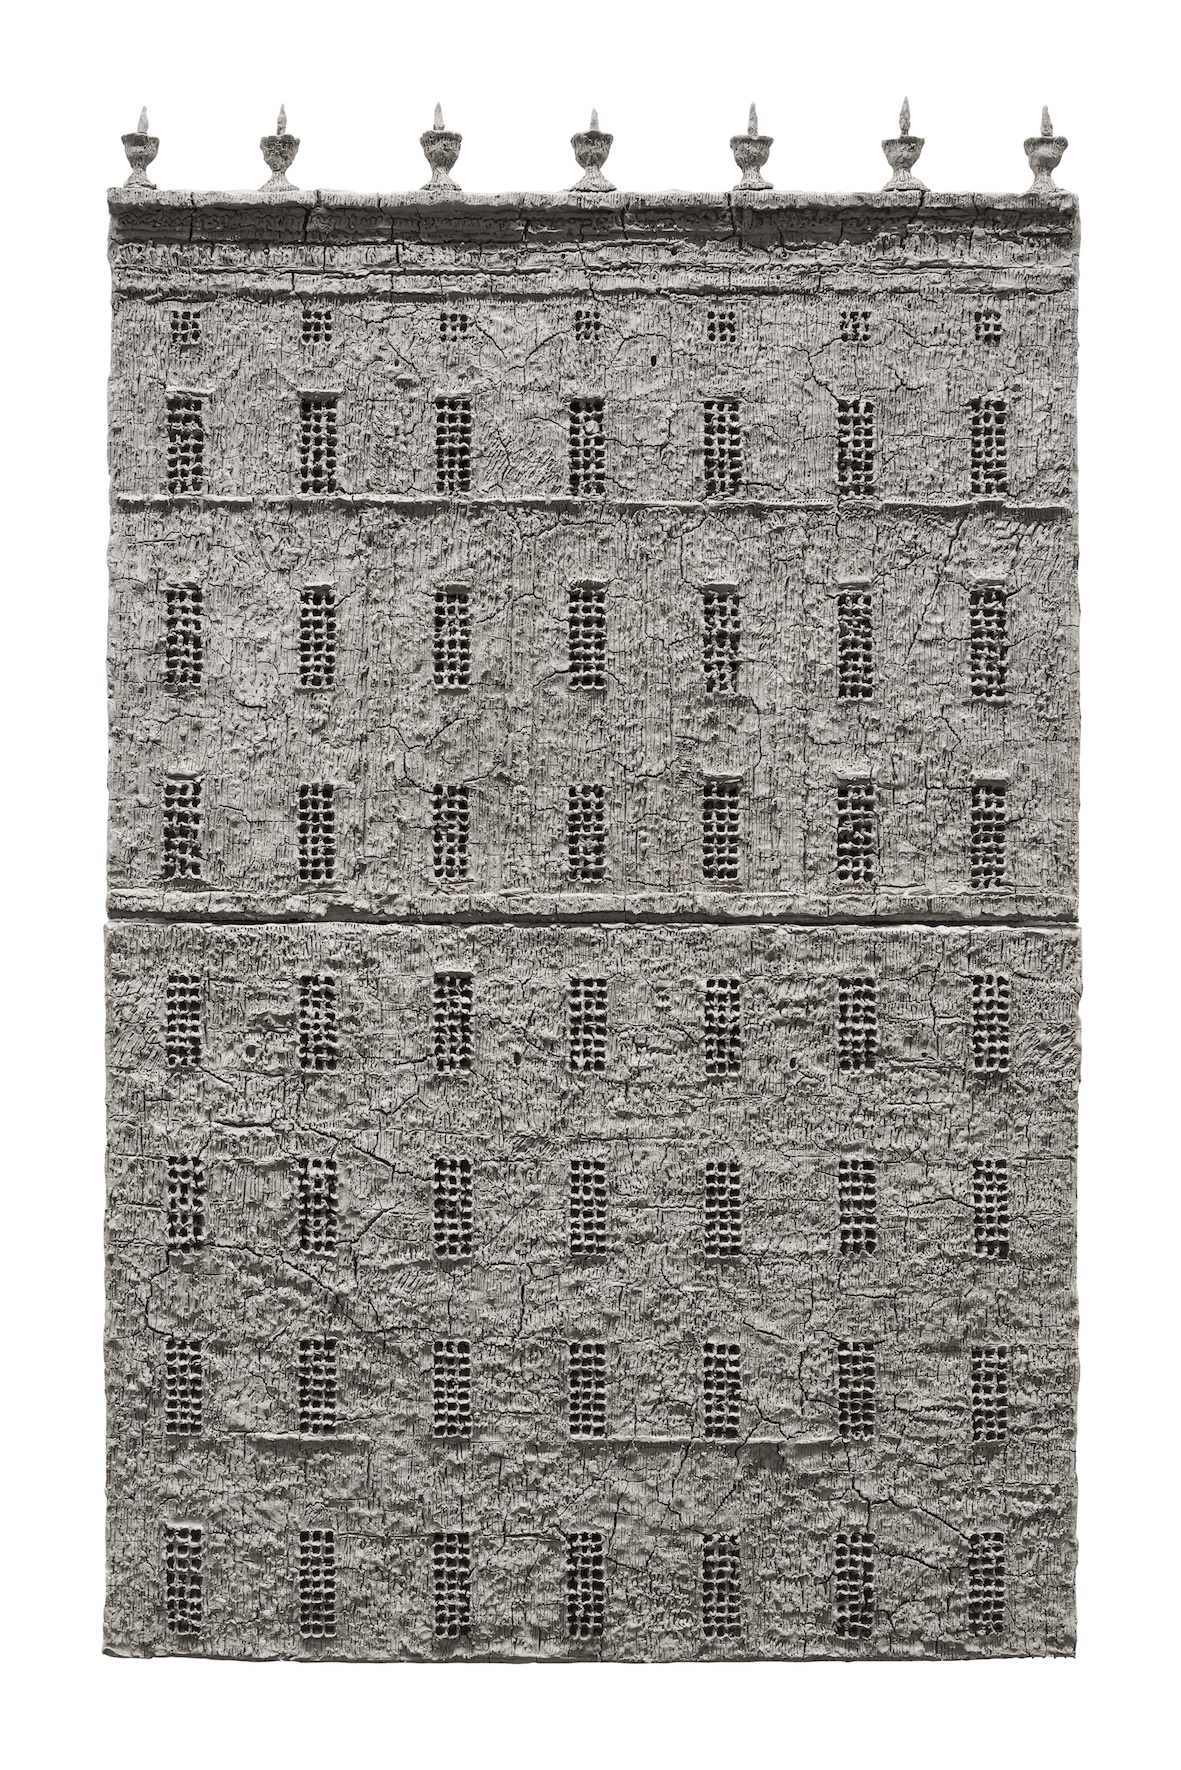 ALEXANDER BRODSKY-UNTITLED-2014-UNFIRED CLAY-98X150CM-COURTESY THE ARTIST AND BETTS PROJECT